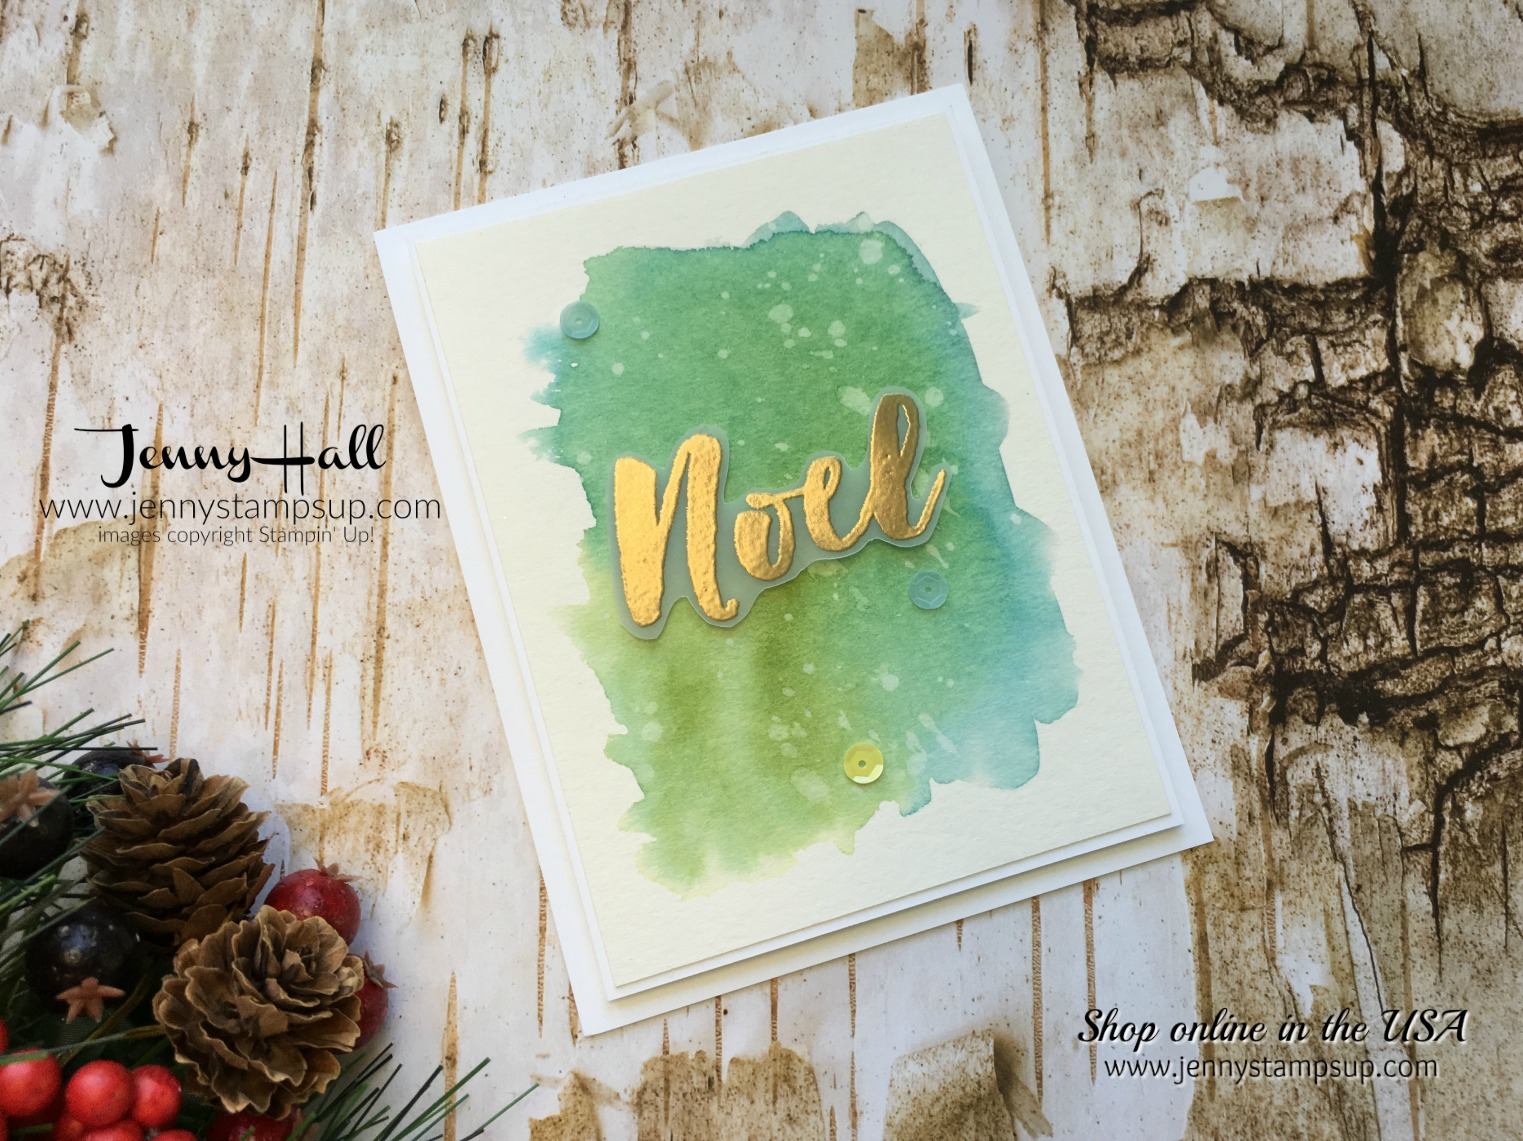 Watercolor Wash tutorial by Jenny Hall at www.jennystampsup.com for cardmaking, scrapbooking, video tutorials and more!